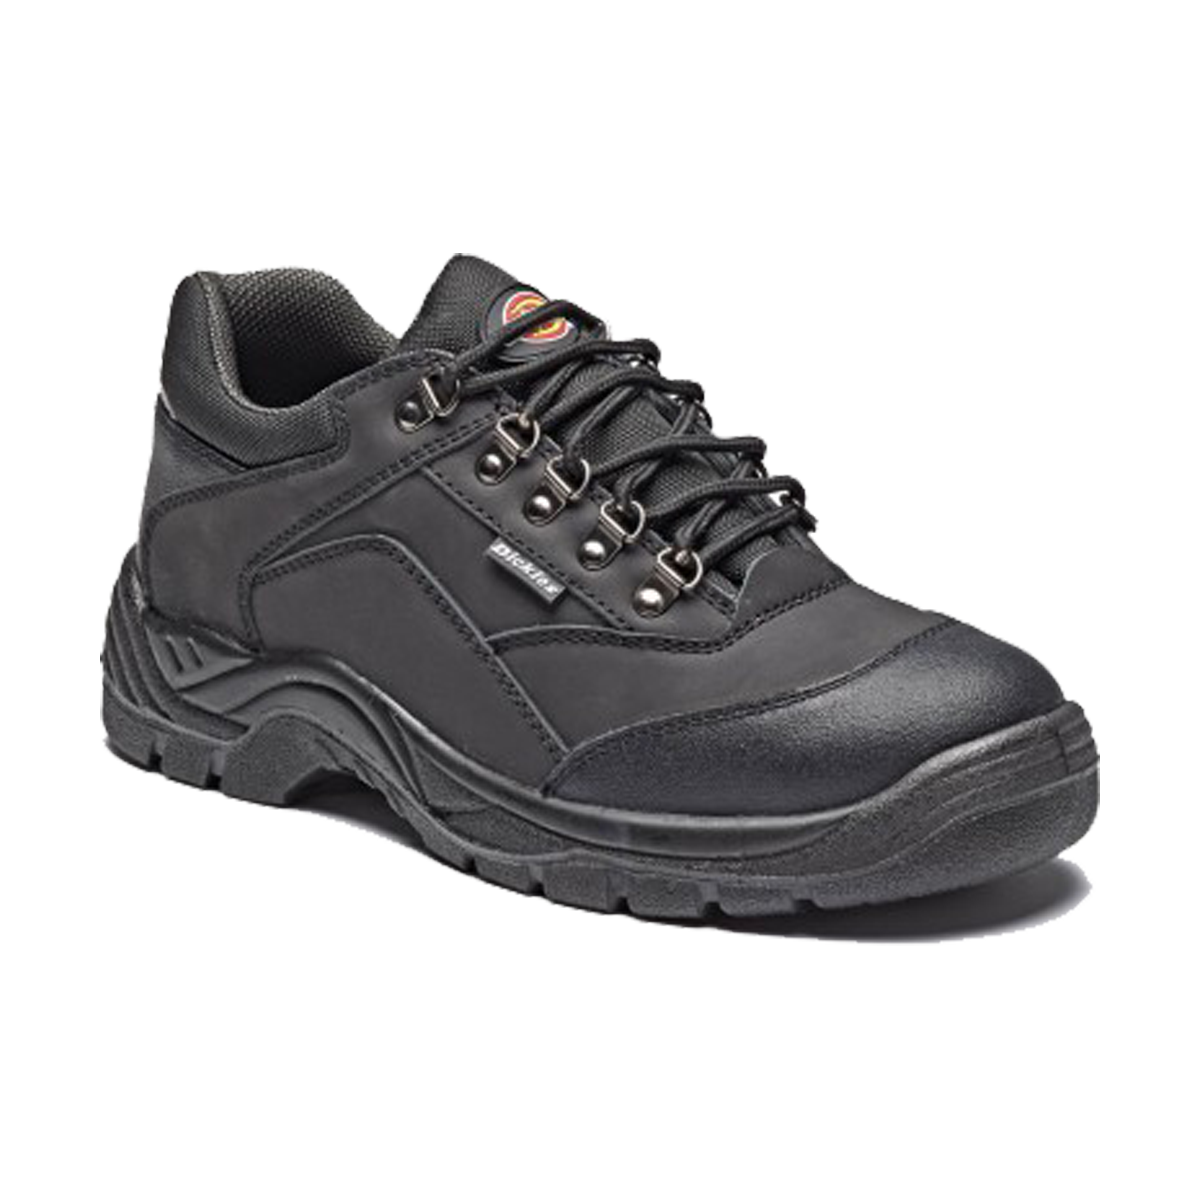 Yacht Uniform - Mechanic - Dickies Work Shoes 2